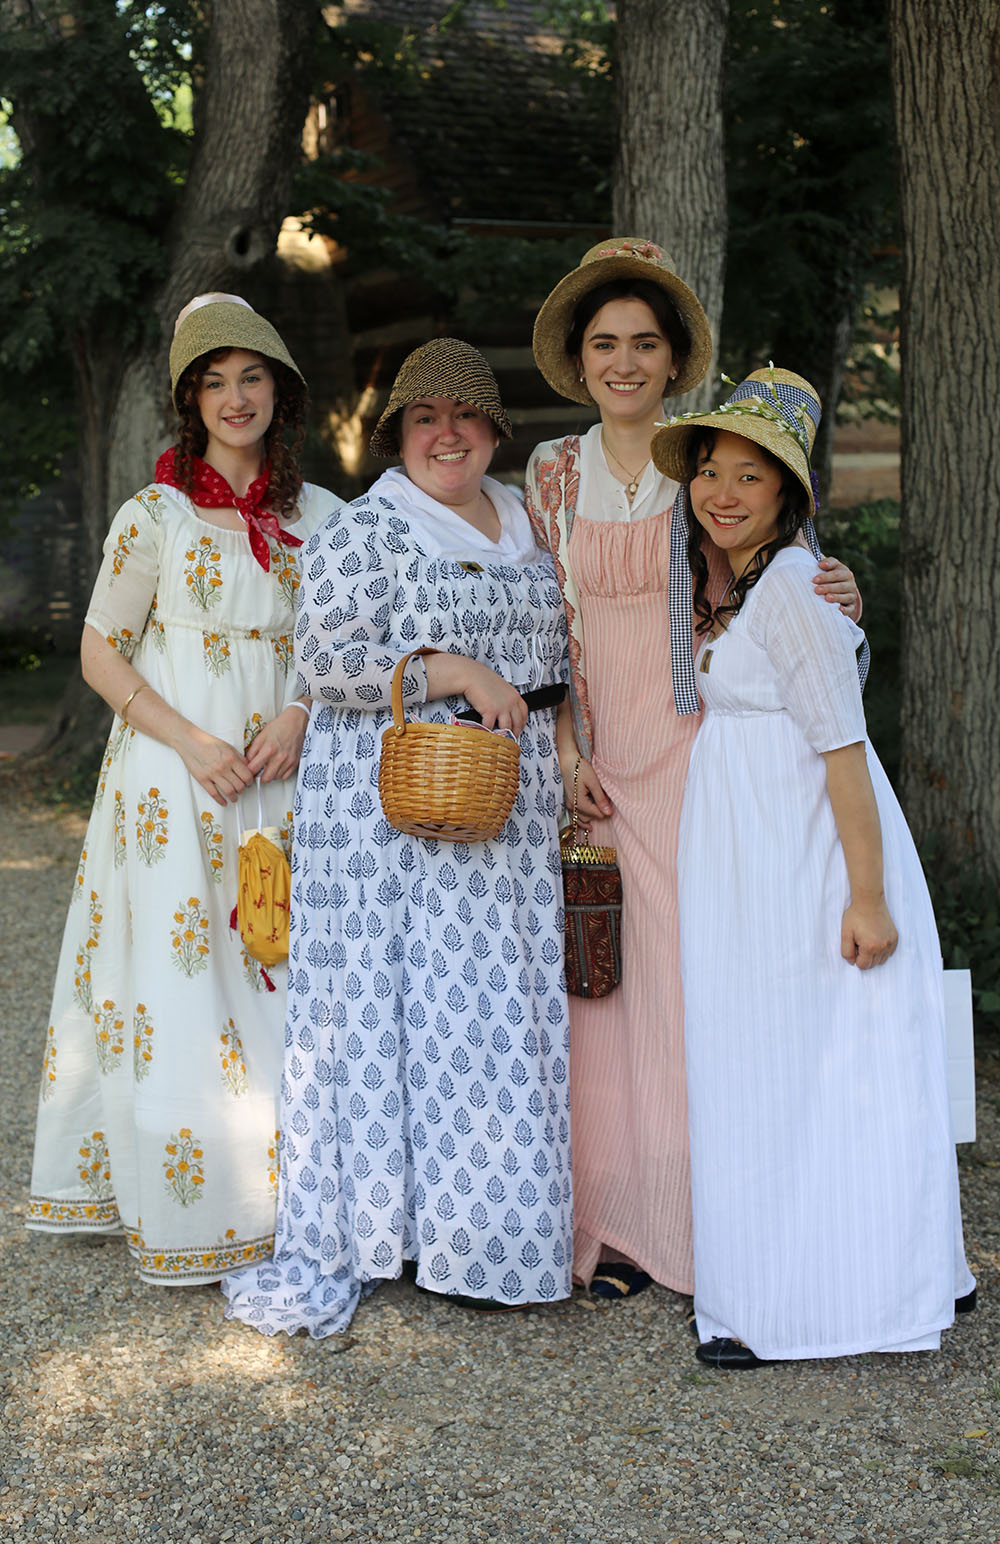 This is a group of regency fans from St. Louis! They were the first ladies I saw as I arrived to the festival and all looked so amazing!